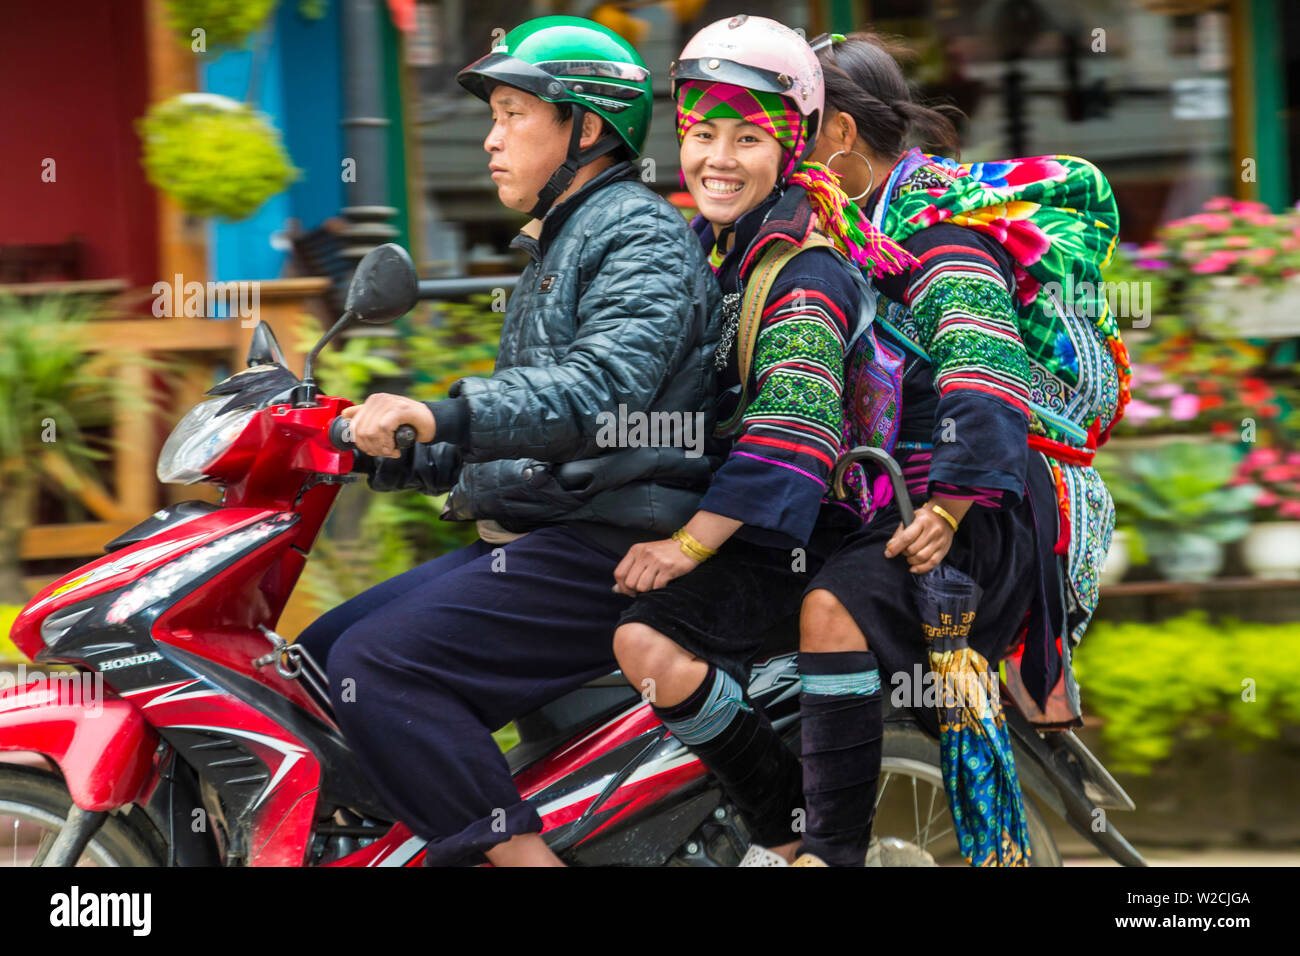 Black Hmong tribes women on scooter, Sapa, N.Vietnam - Stock Image